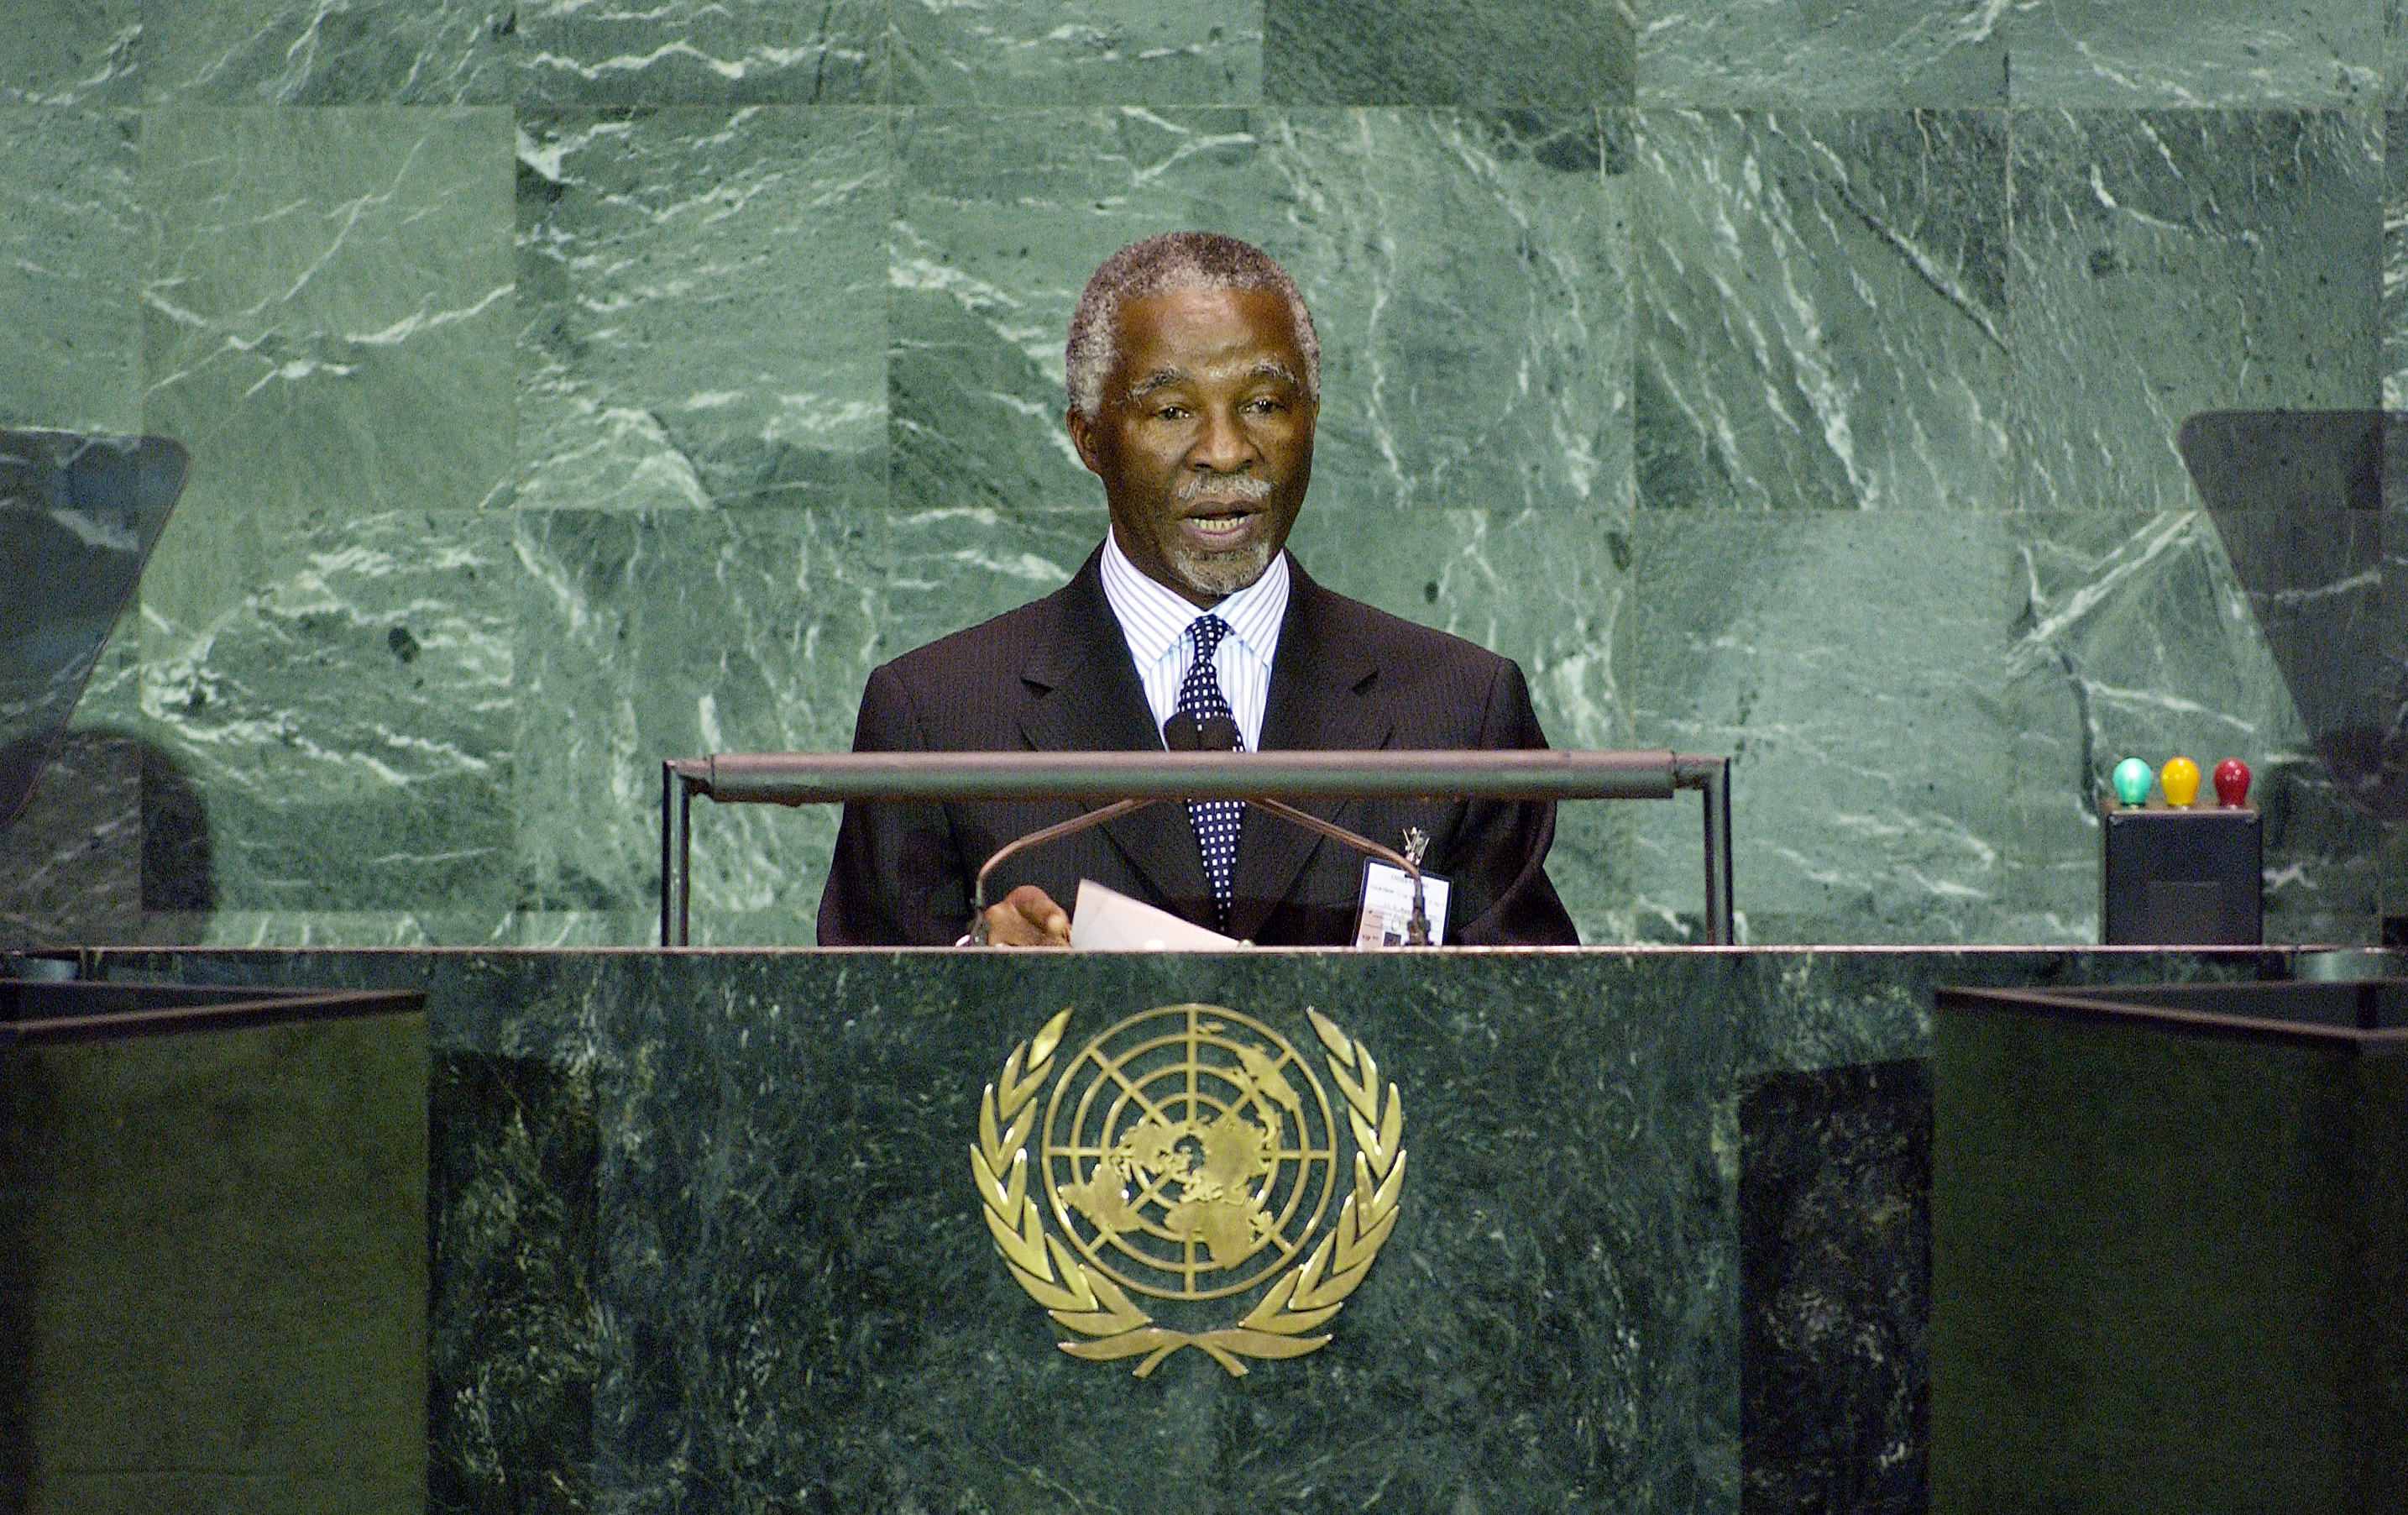 President Mbeki's Moment: A Stand for Peace in the Two Sudans